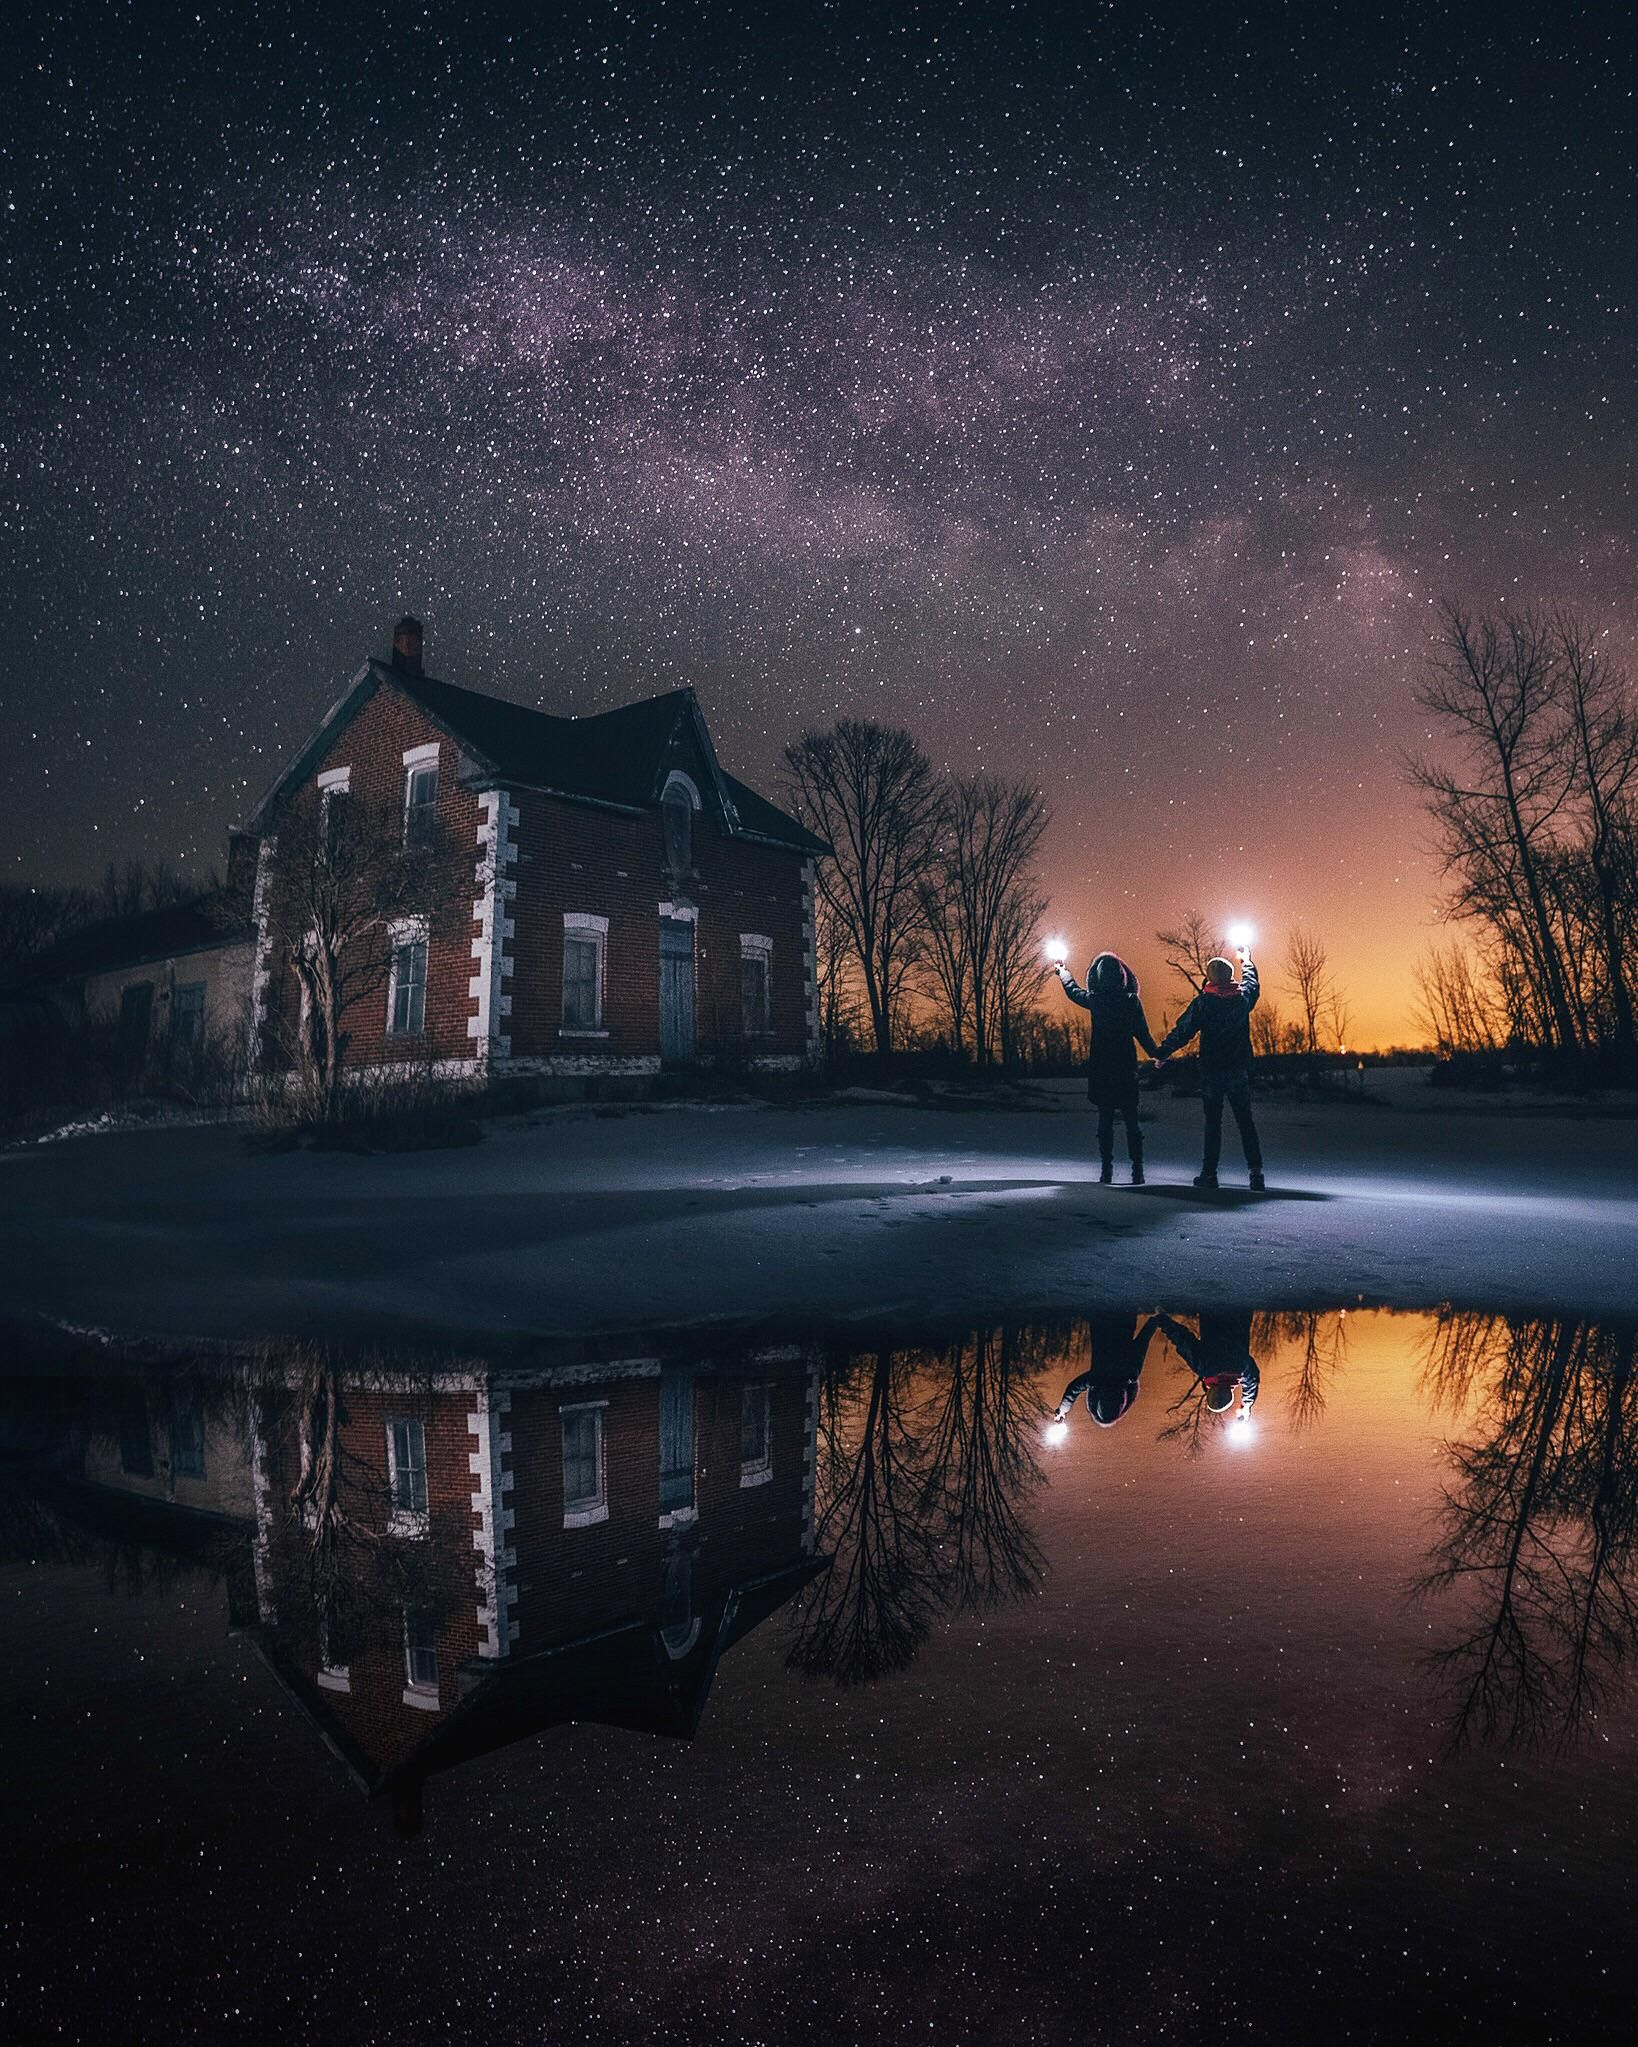 The Night Sky An Old House And A Puddle